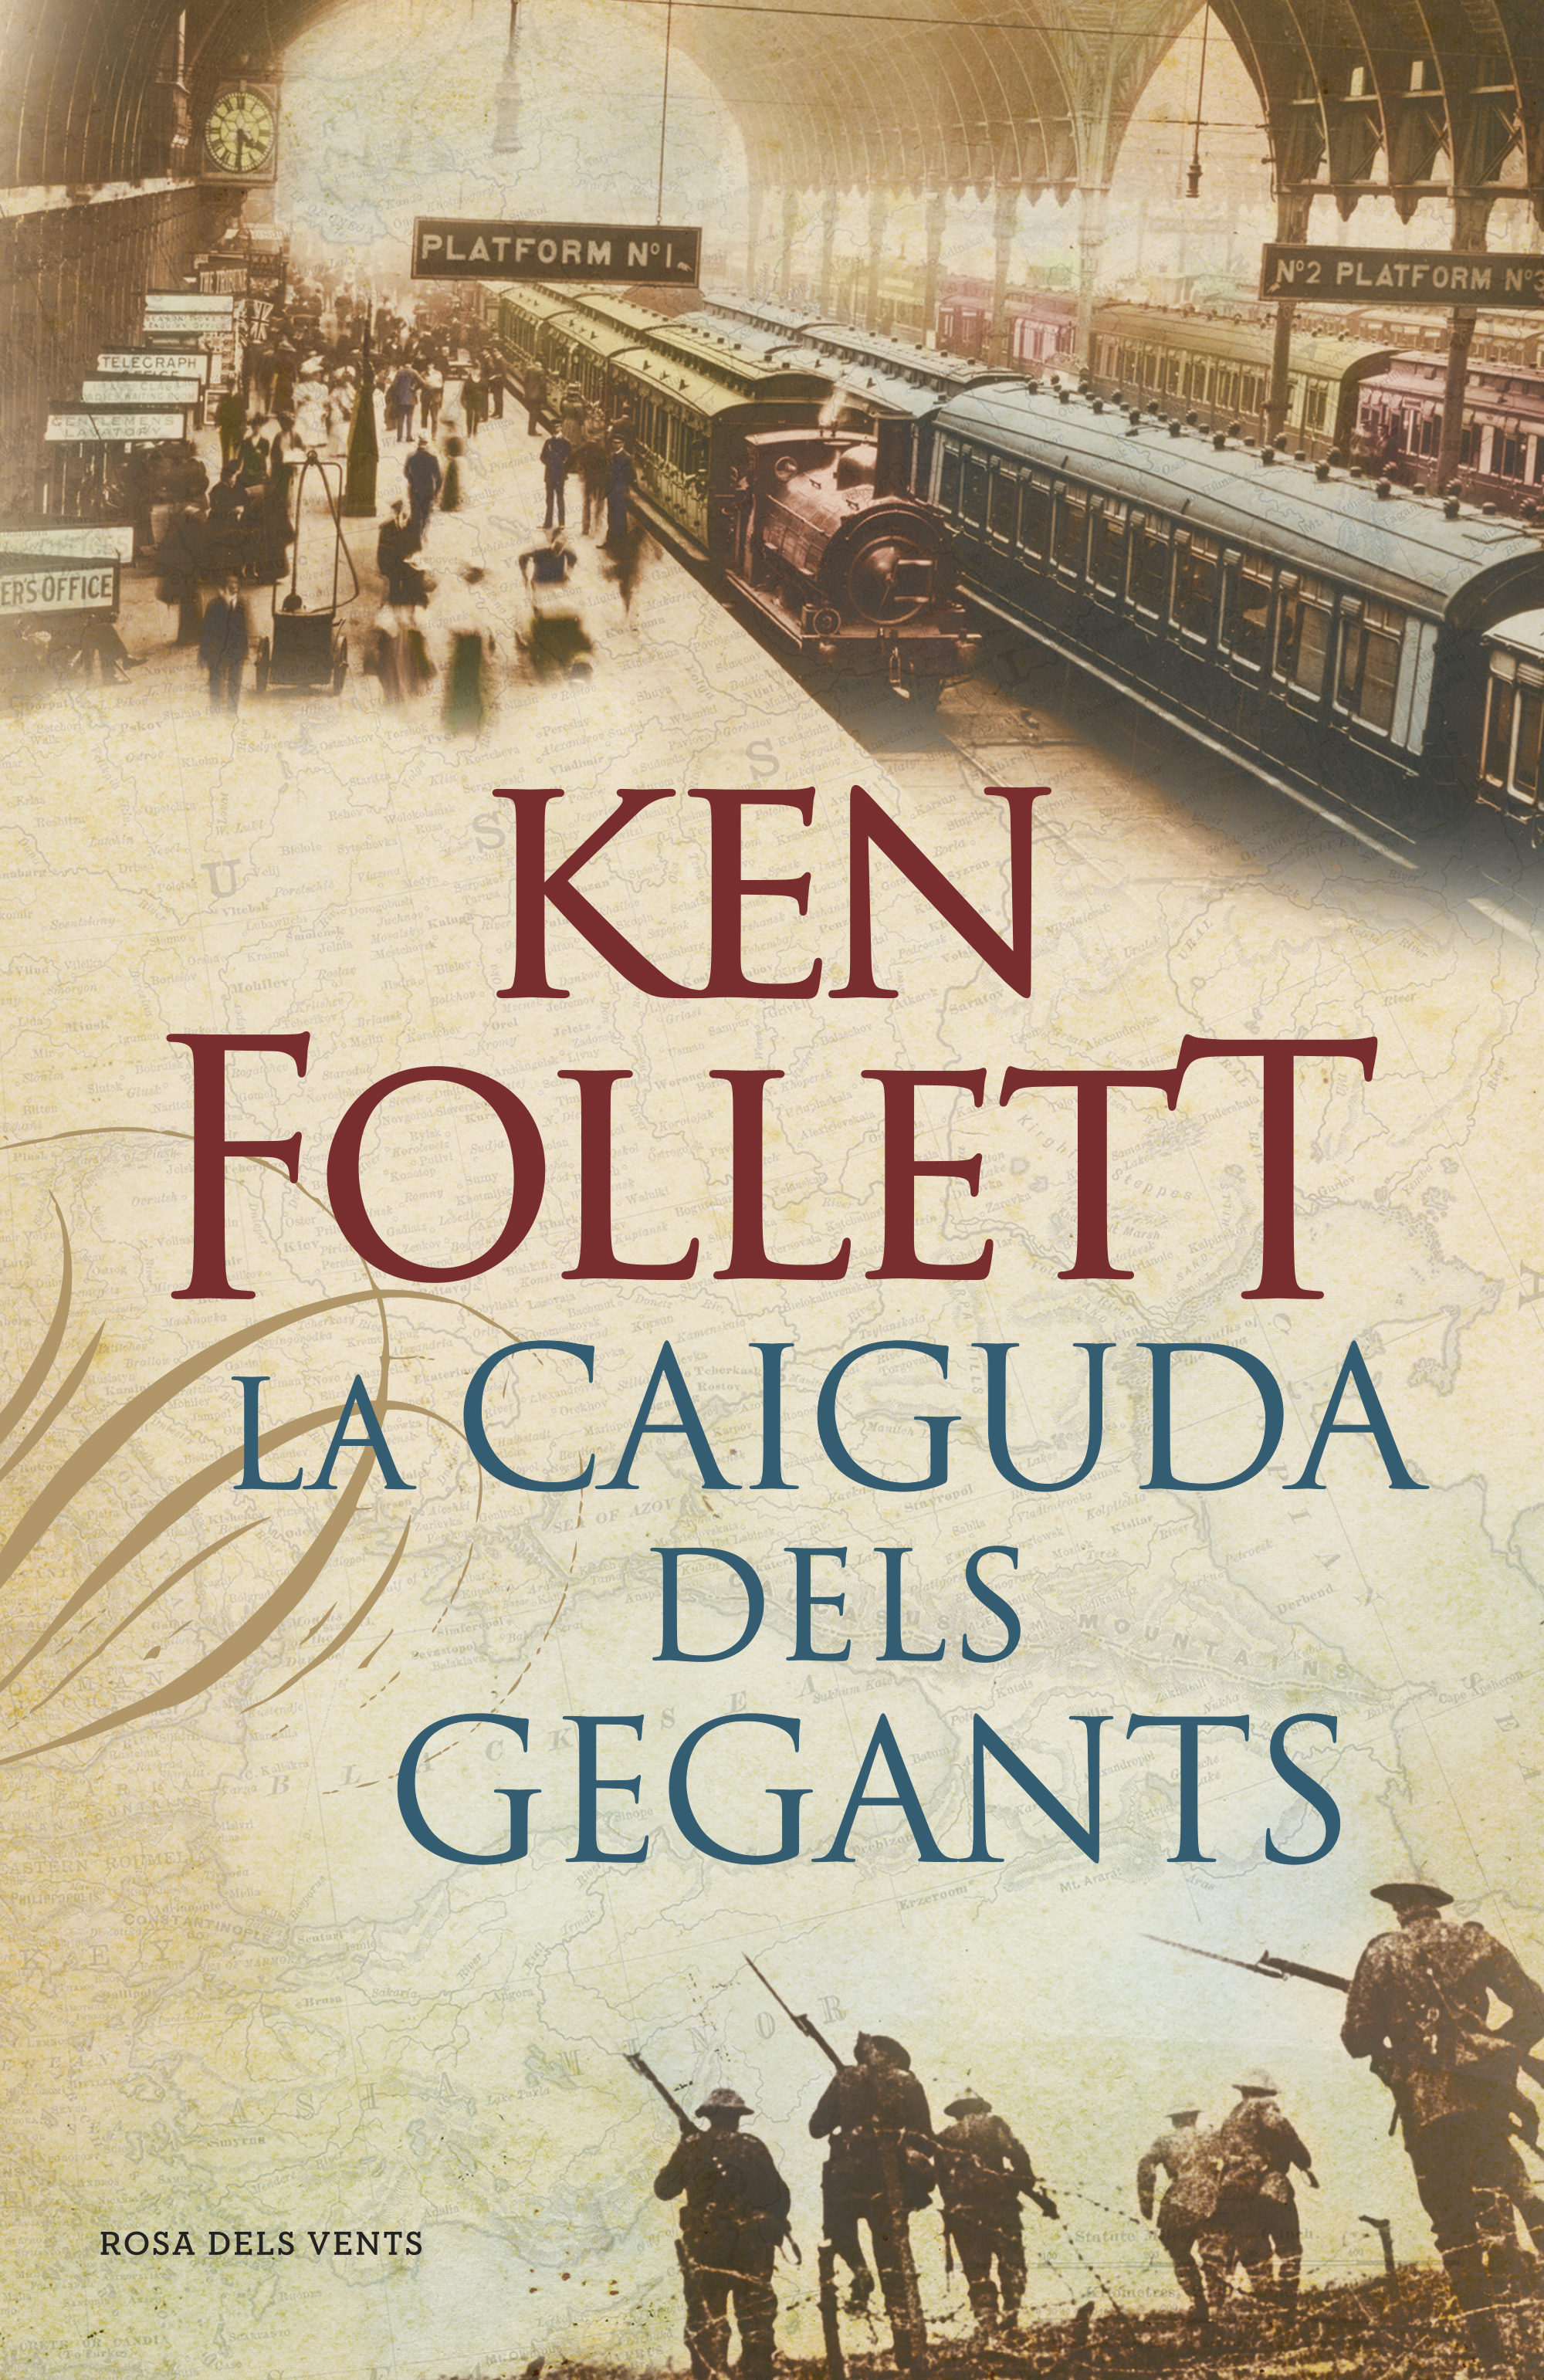 Descargar Libros Ken Follet La Caiguda Dels Gegants The Century 1 Ebook Ken Follett Descargar Libro Pdf O Epub 9788401387678